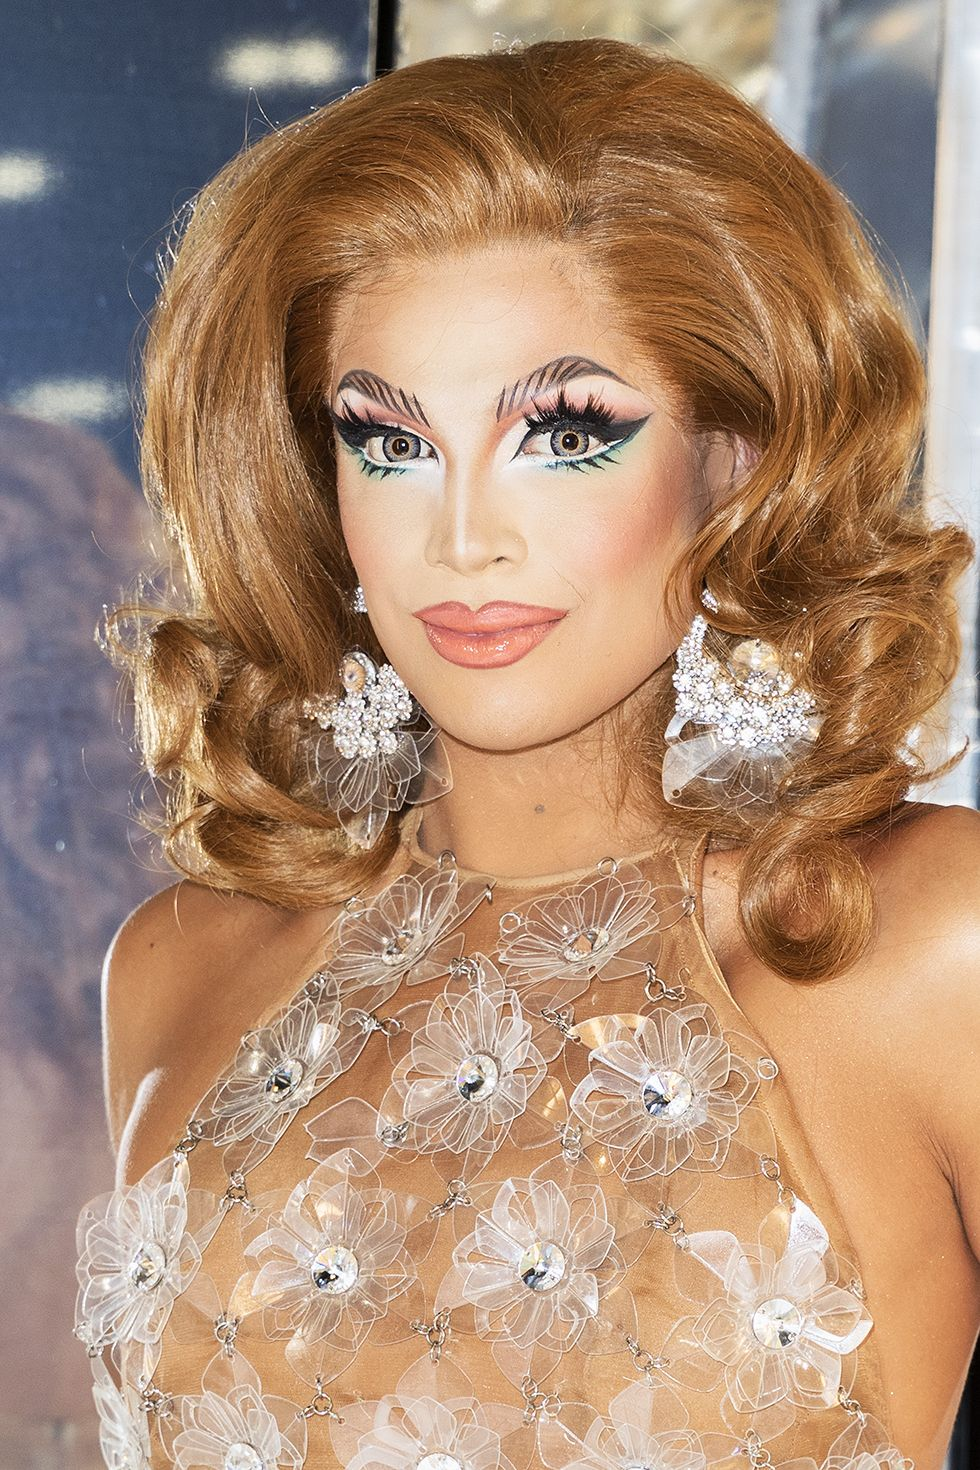 Makeup Tips from Drag Queens - Beauty Tips from Drag Queens